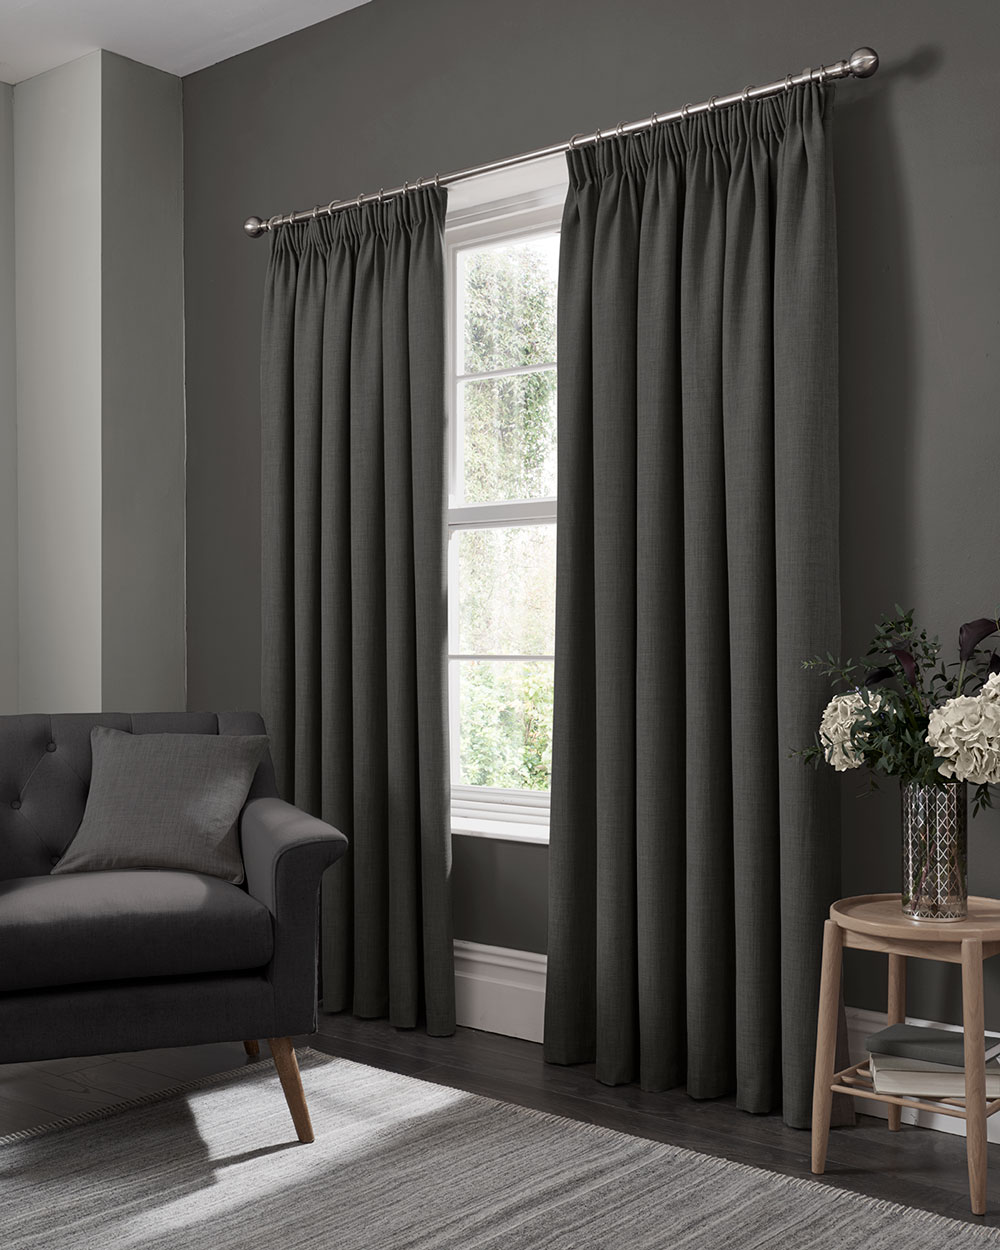 Elba Pencil Pleat Curtains Ready Made Curtains - Steel - by Studio G